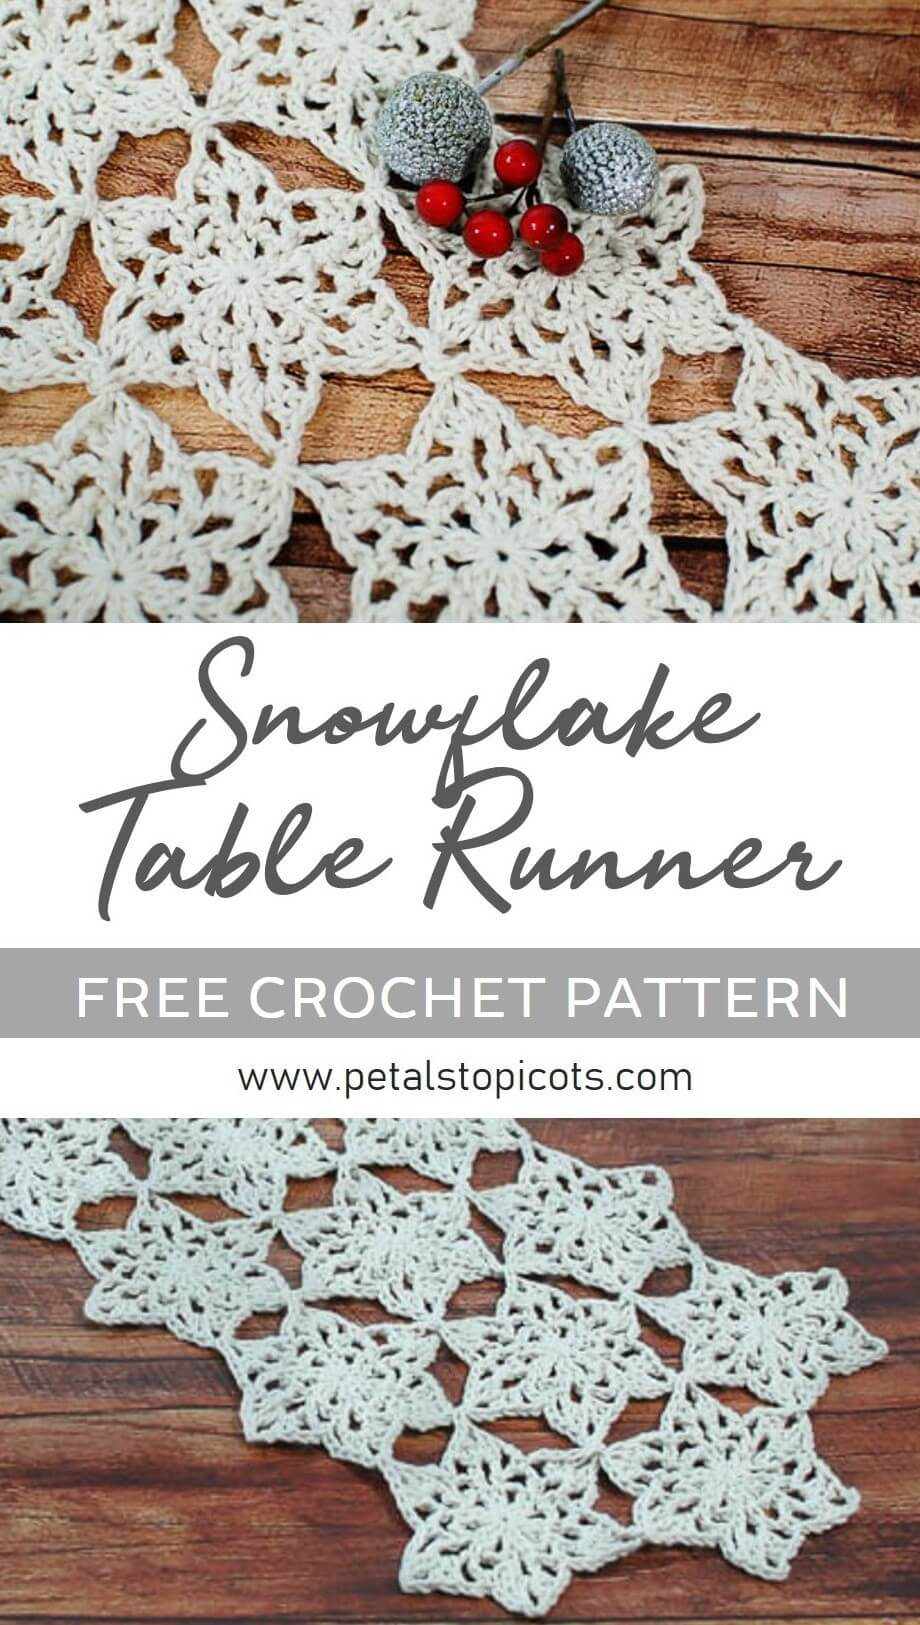 Add some winter whimsy to your table with this pretty Snowflake Table Runner Crochet Pattern ... it's the perfect accent for the holiday season and throughout the winter months! #petalstopicots